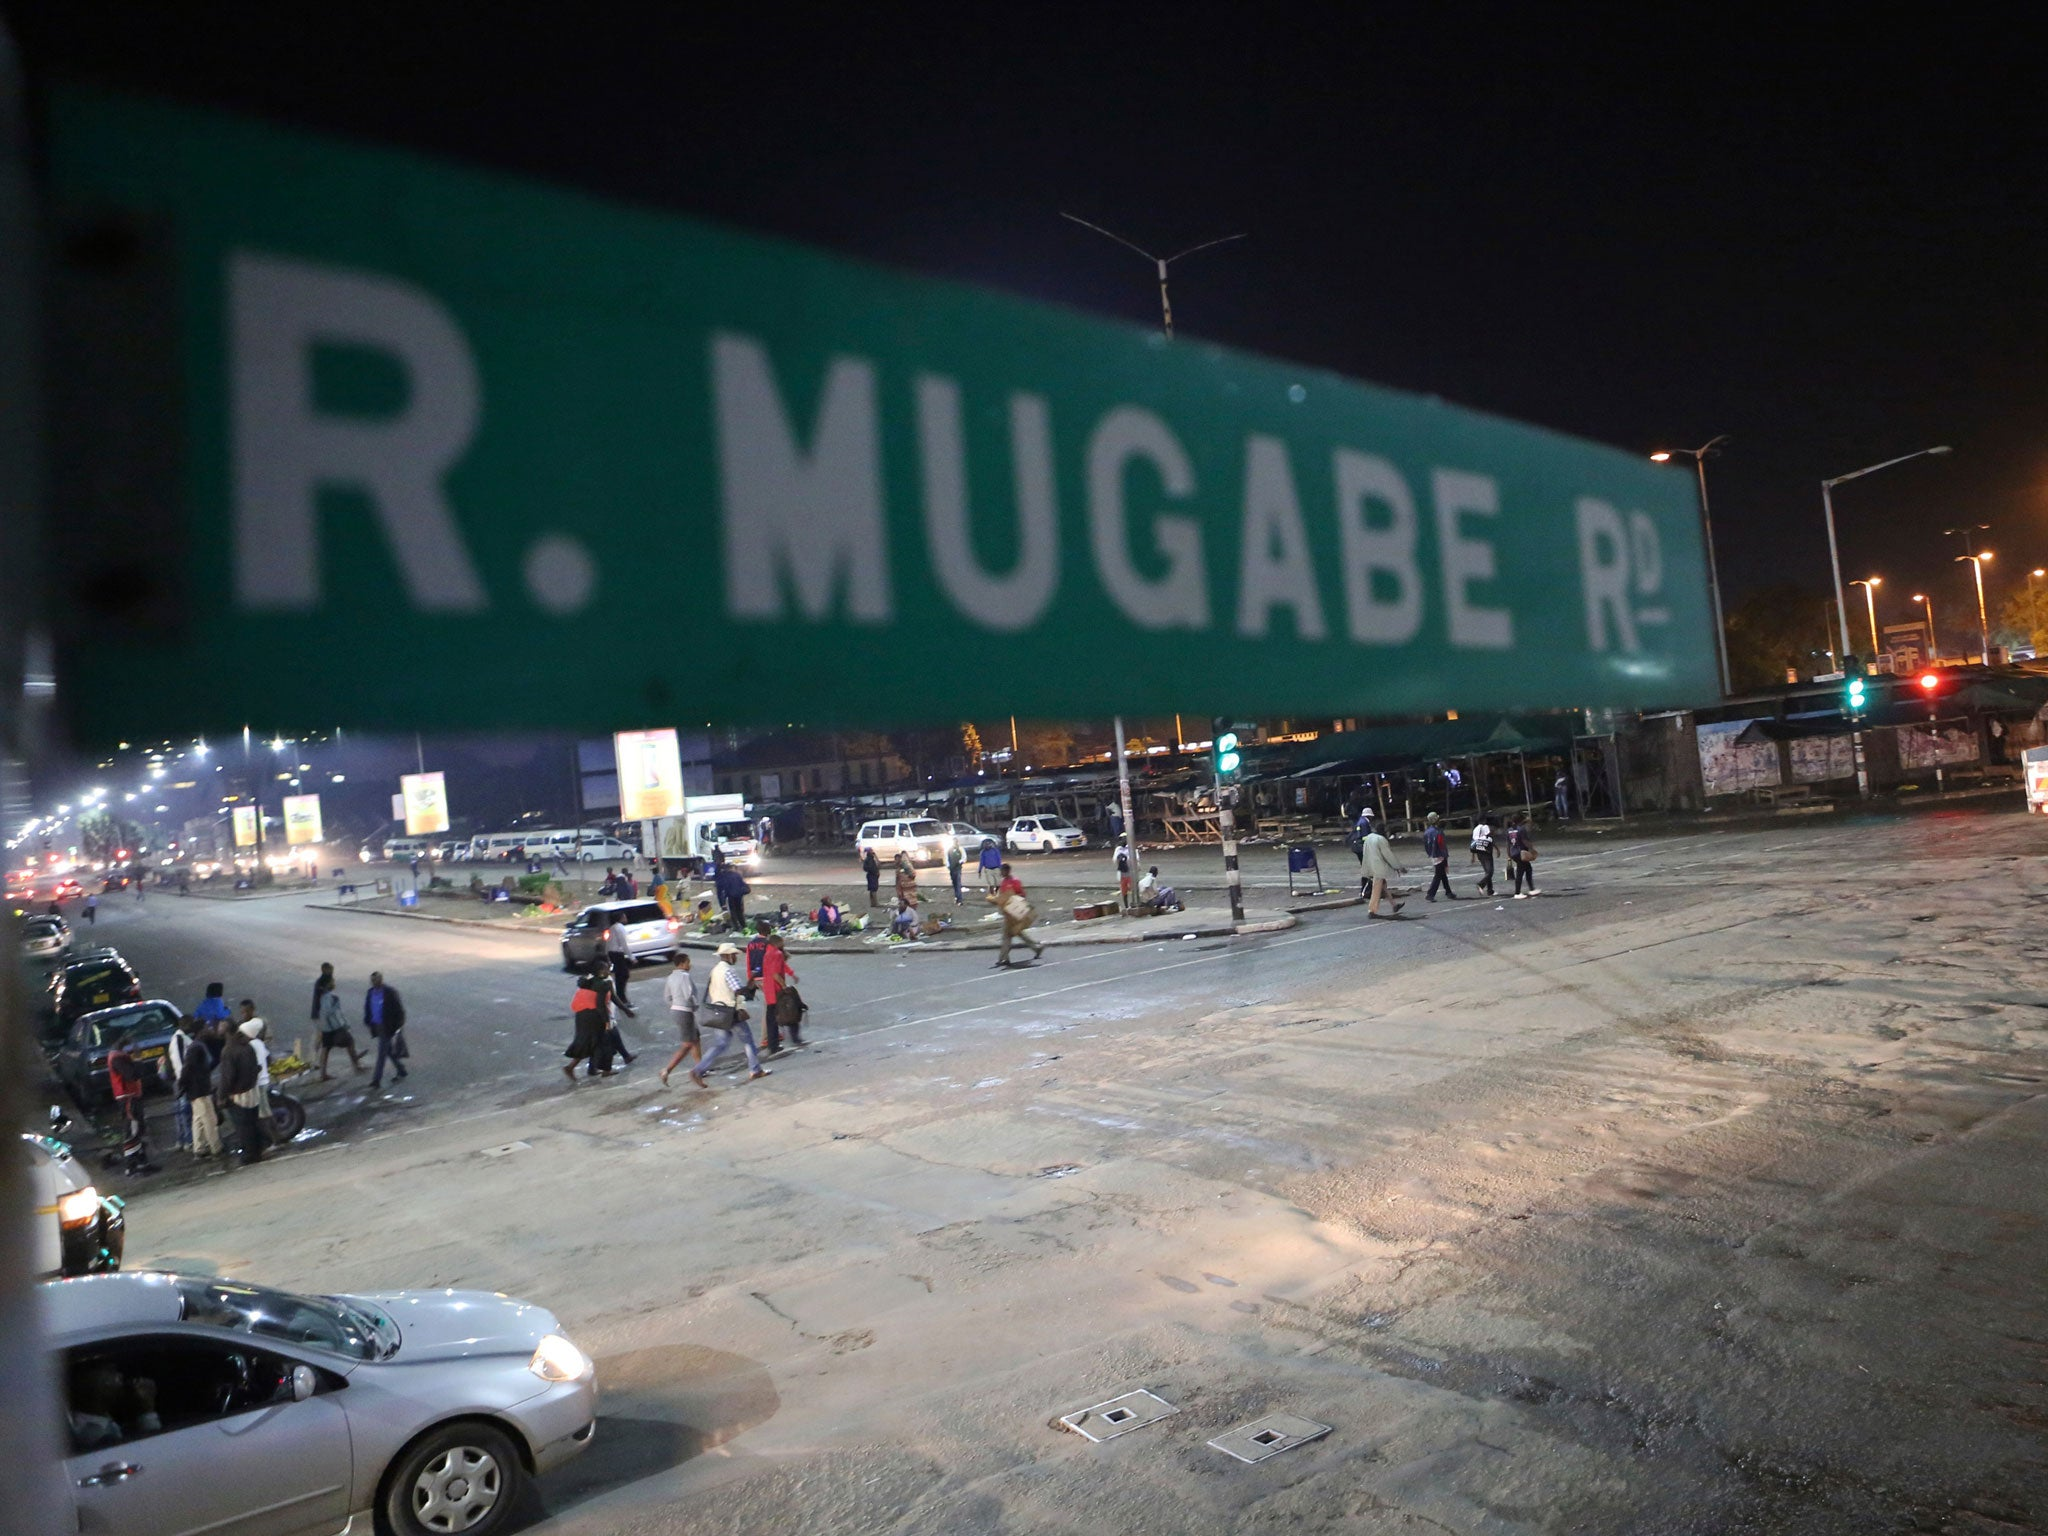 Soldiers have reportedly taken over Zimbabwe's state broadcaster